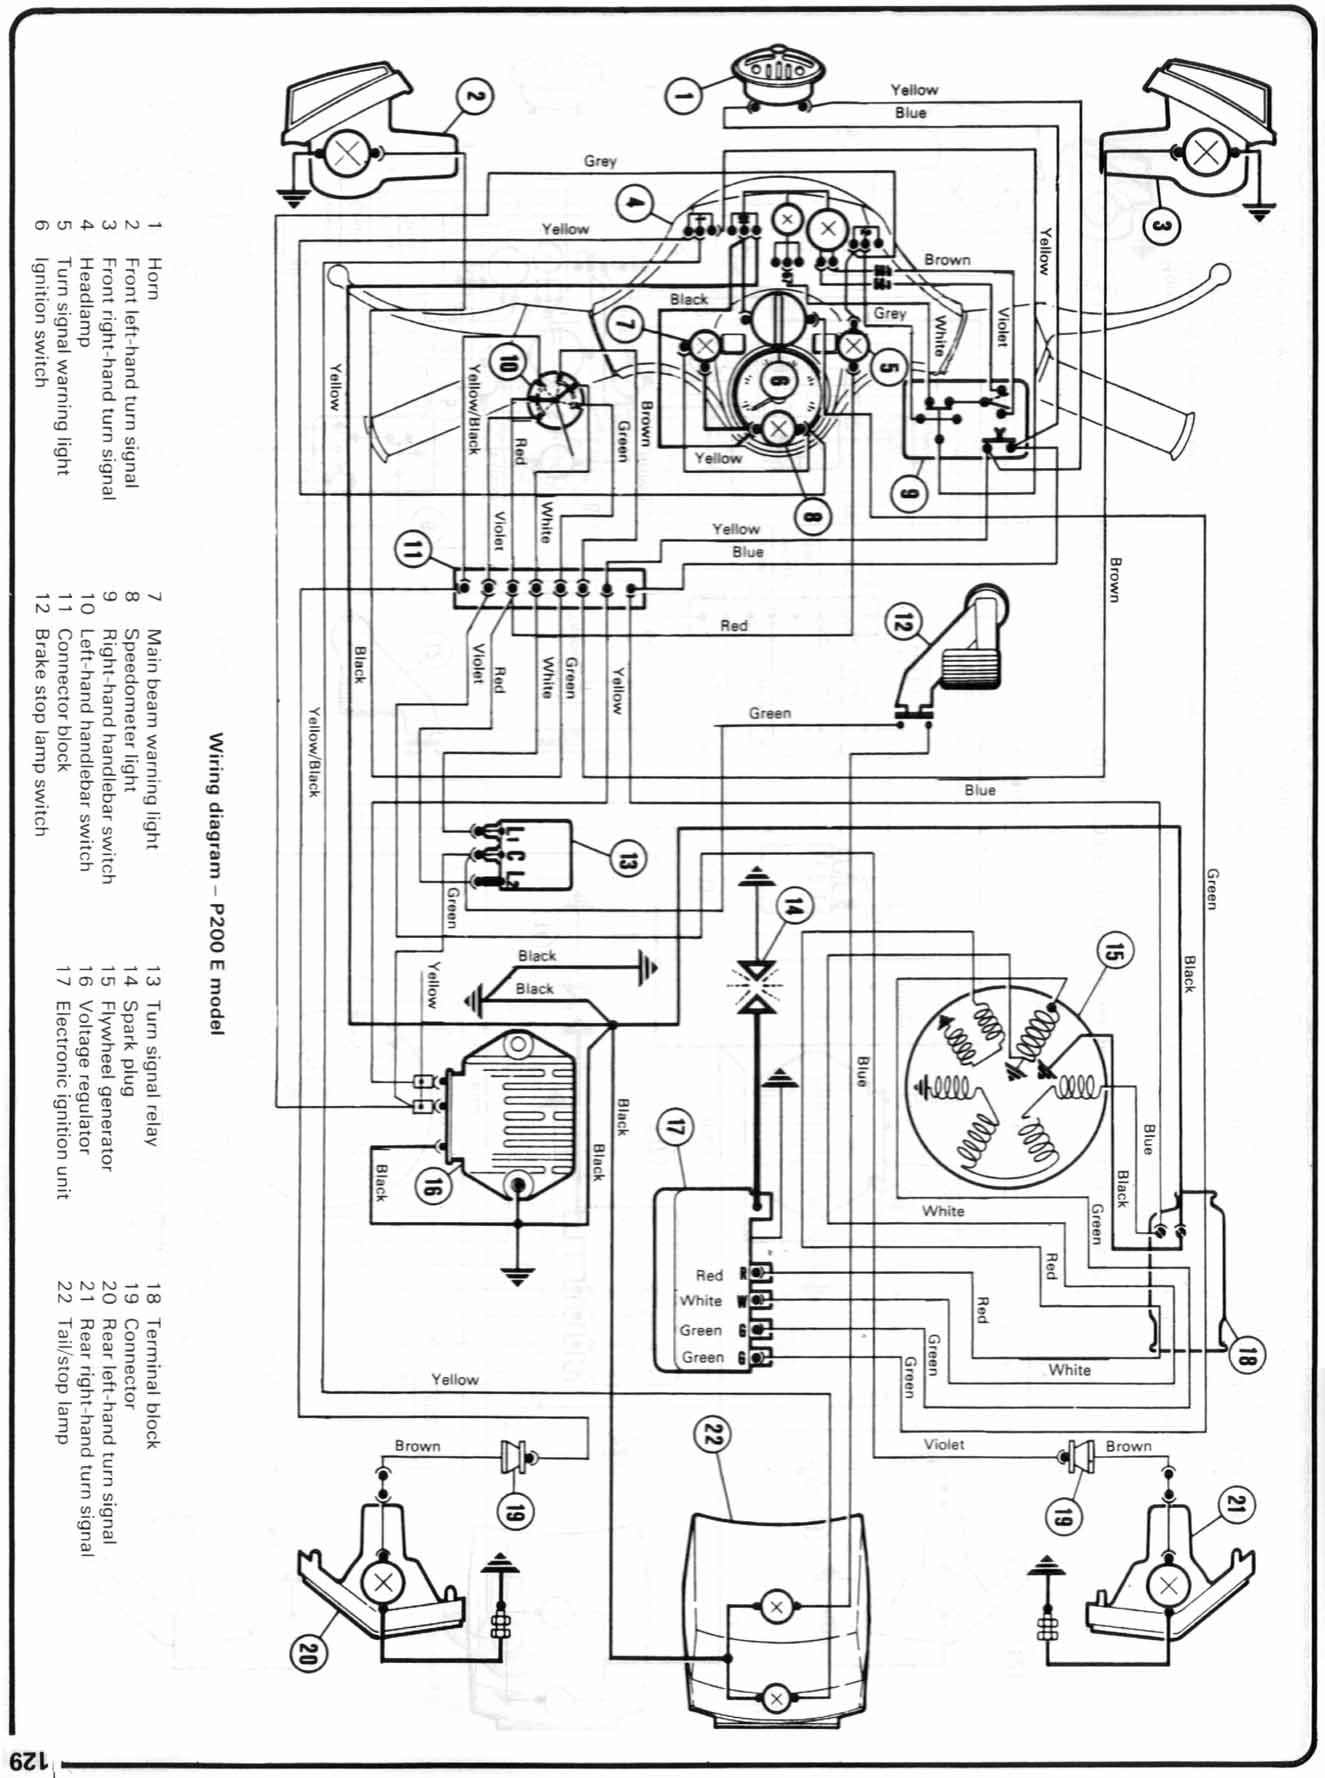 Vespa Wiring Diagram Free - Wiring Diagram Name on wiring a switch from a switch, electrical switches diagram, three way switches diagram, switch diagram, electrical outlets diagram, three prong power cord diagram,